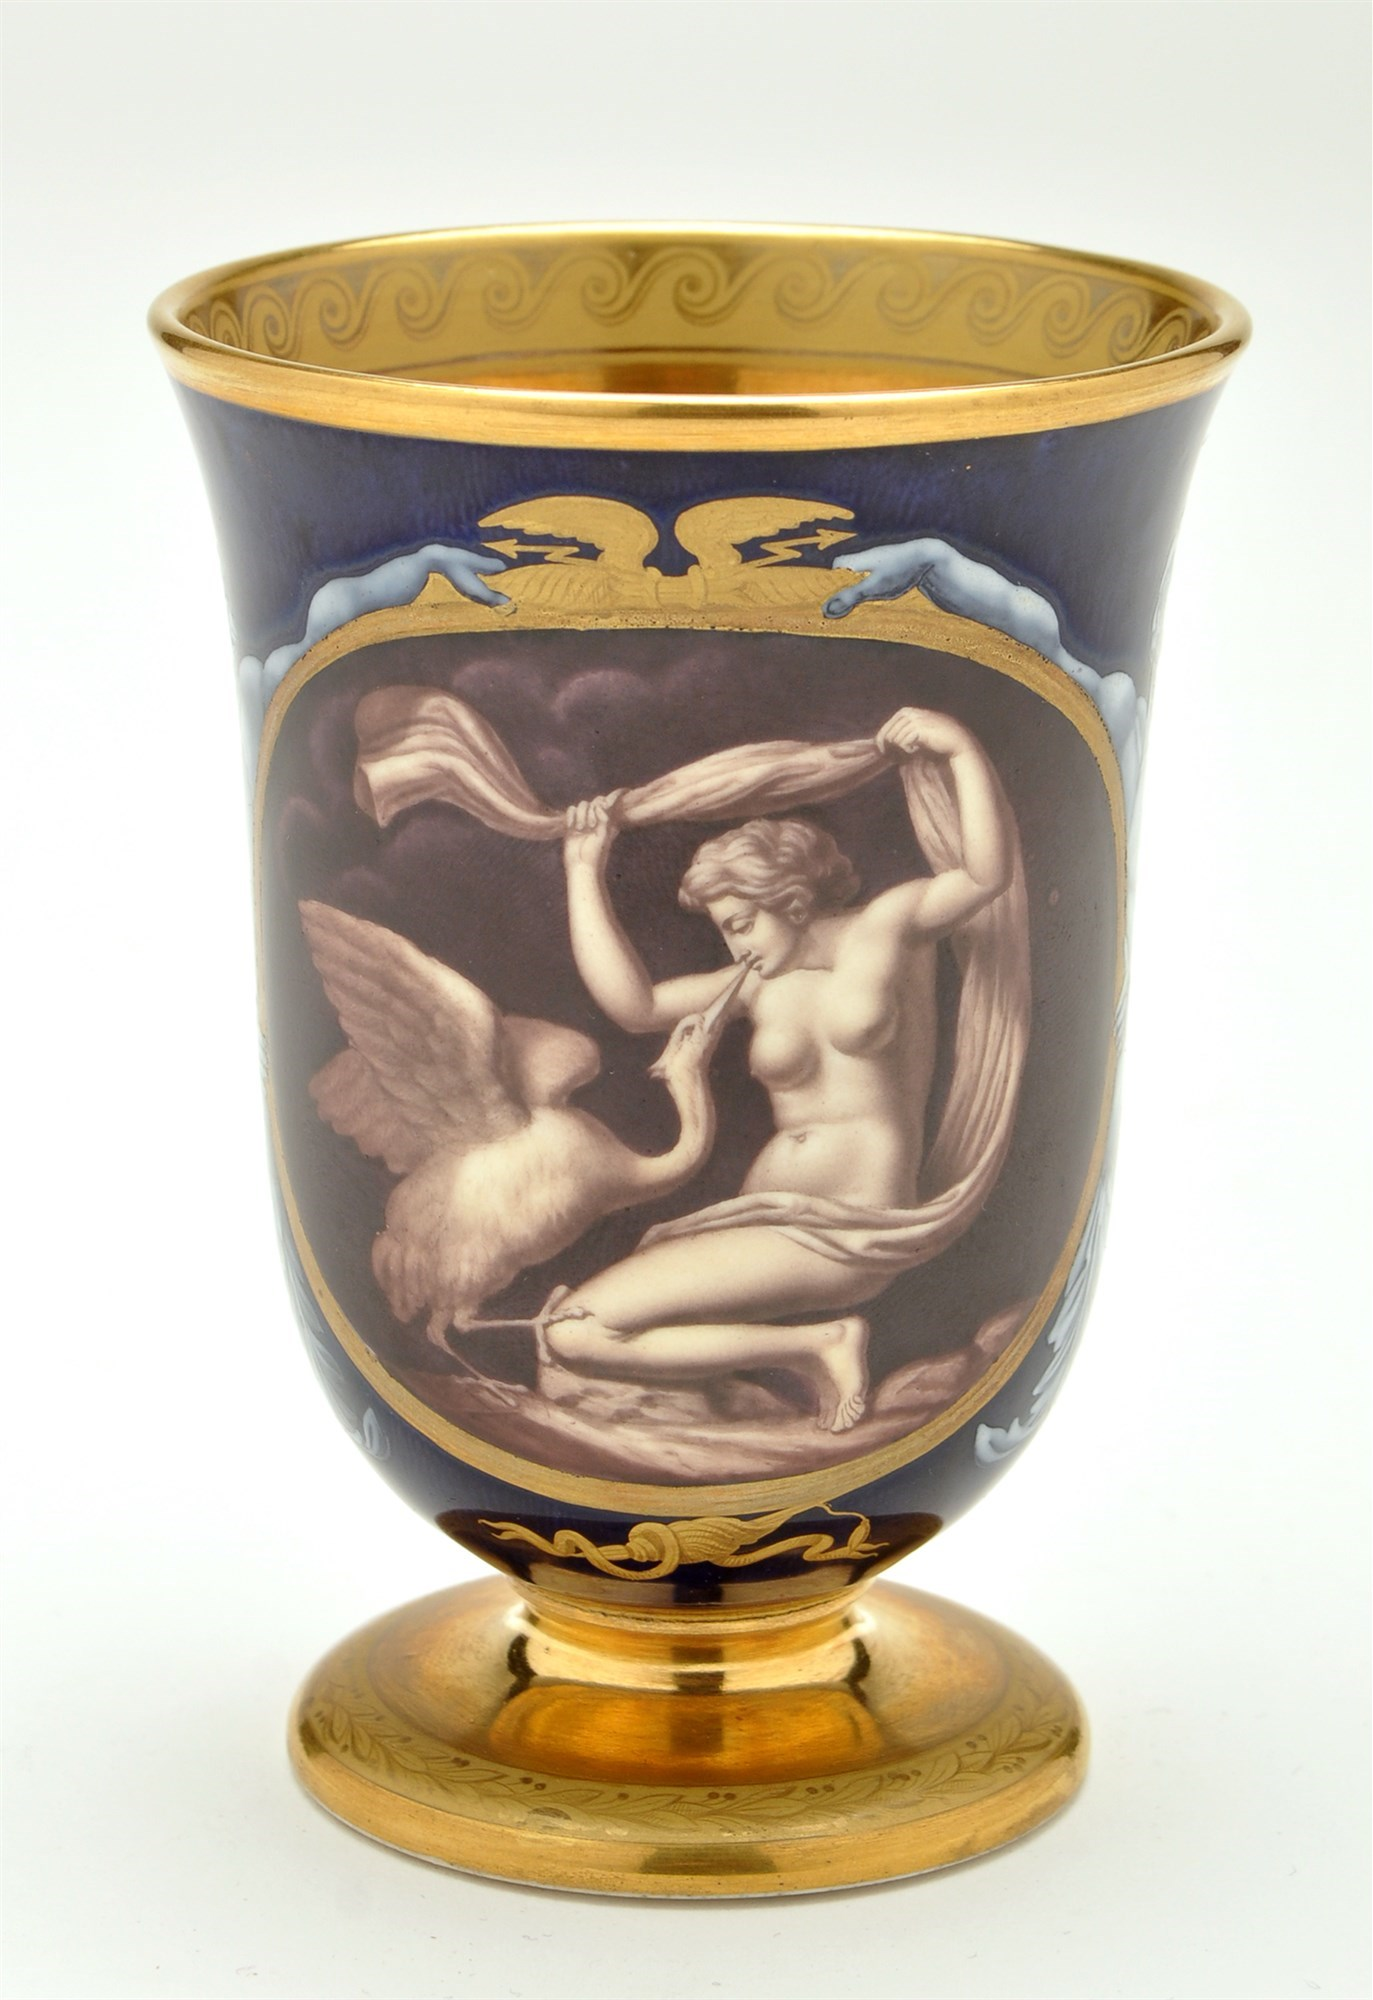 Kerr & Binns Worcester beaker, painted by Thomas Bott